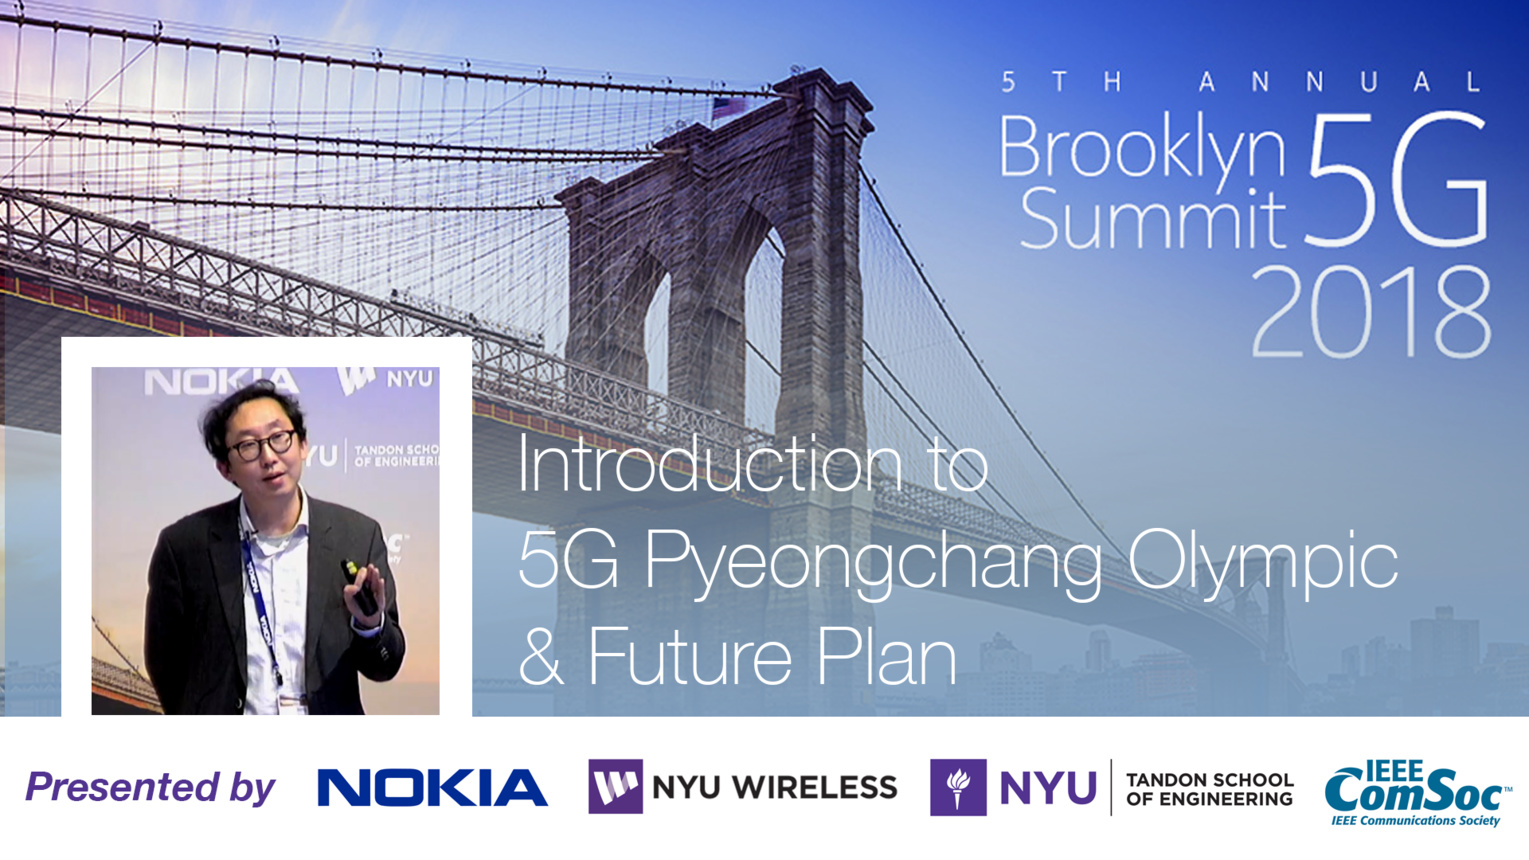 Introduction to 5G Pyeongchang Olympic and Future Plan - Jongsik Lee - Brooklyn 5G Summit 2018